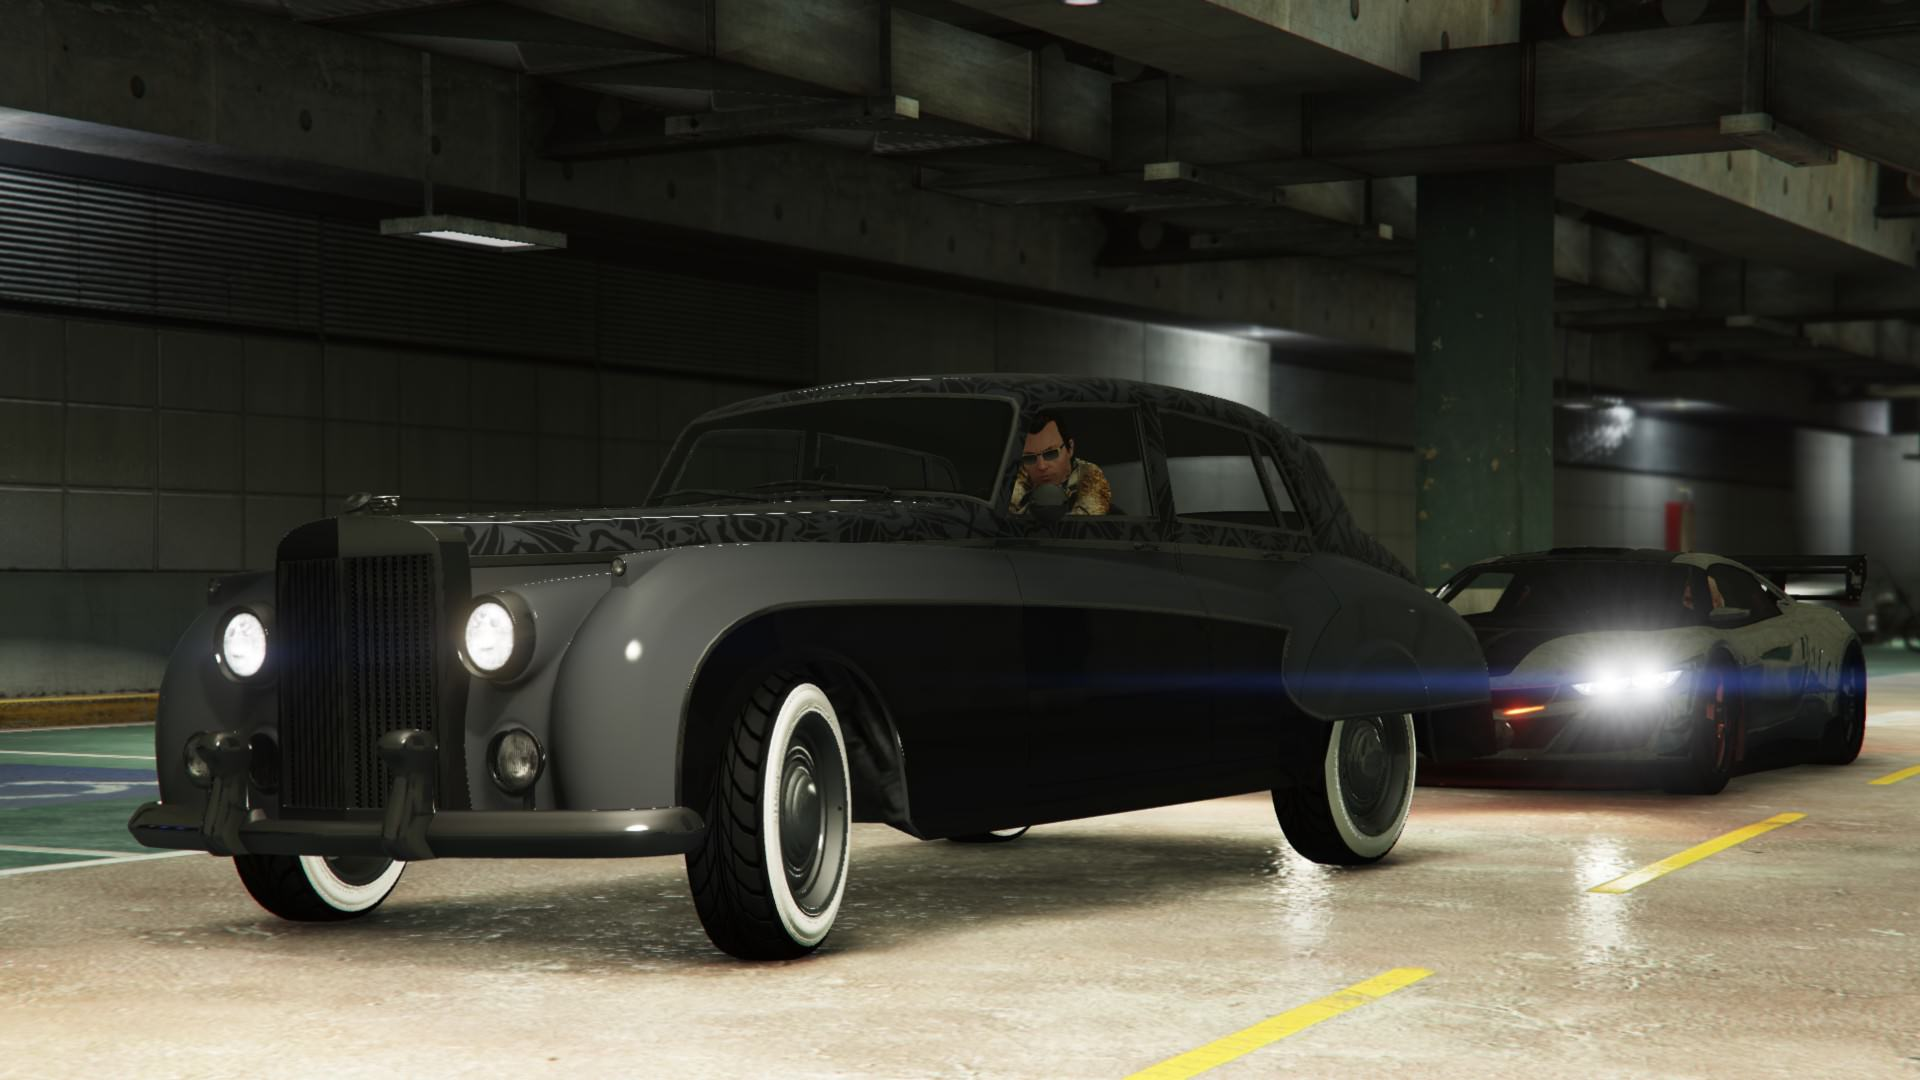 An Spd Sneak On The Hidden Vehicles In The After Hours Dlc 5 Enus